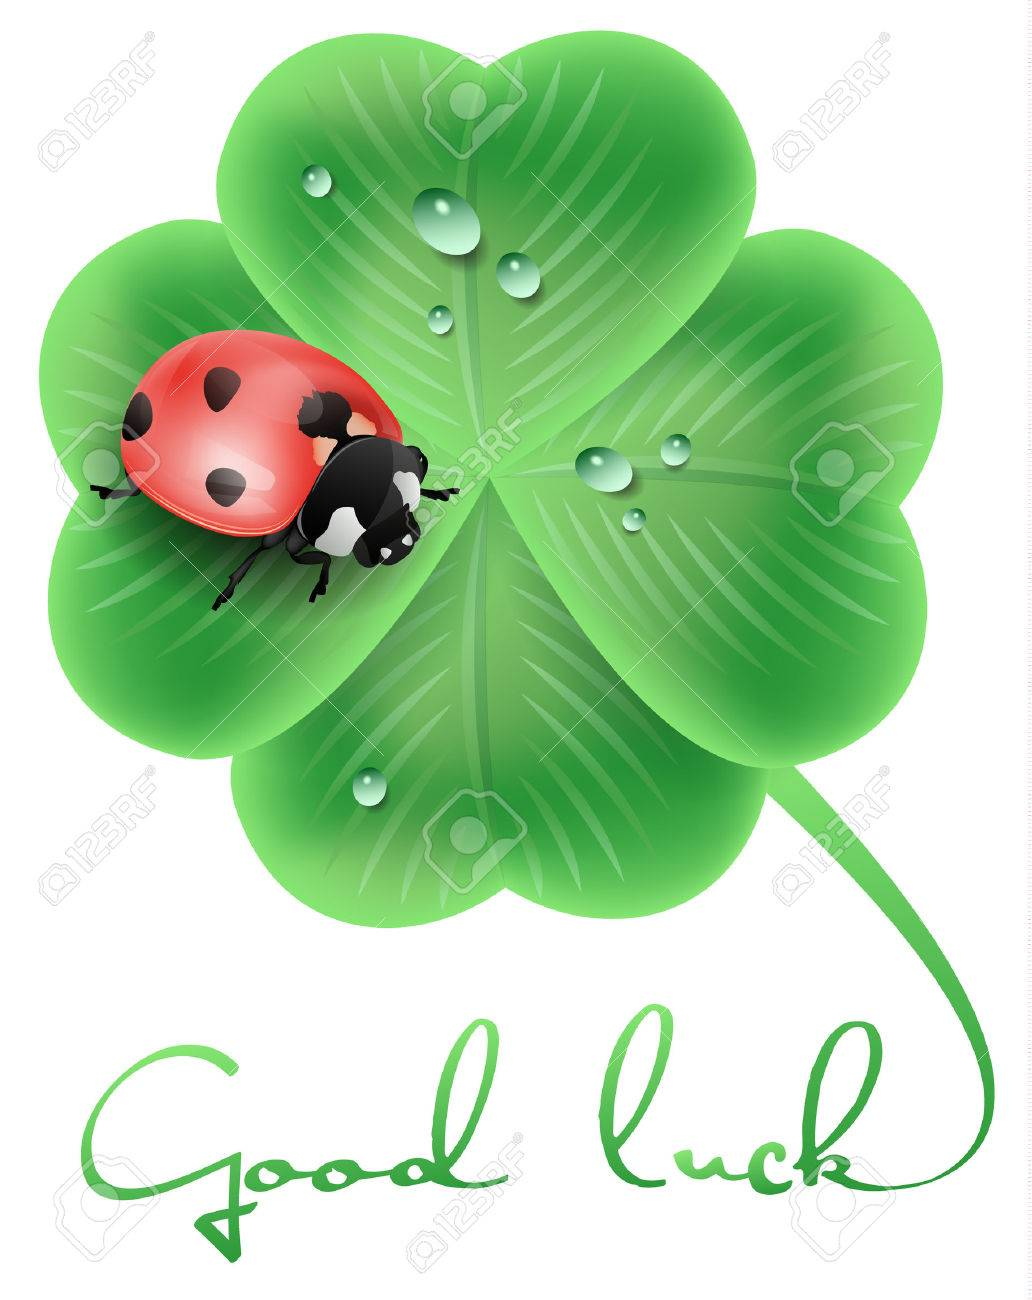 good luck illustration with a ladybug and a clover - 39050577